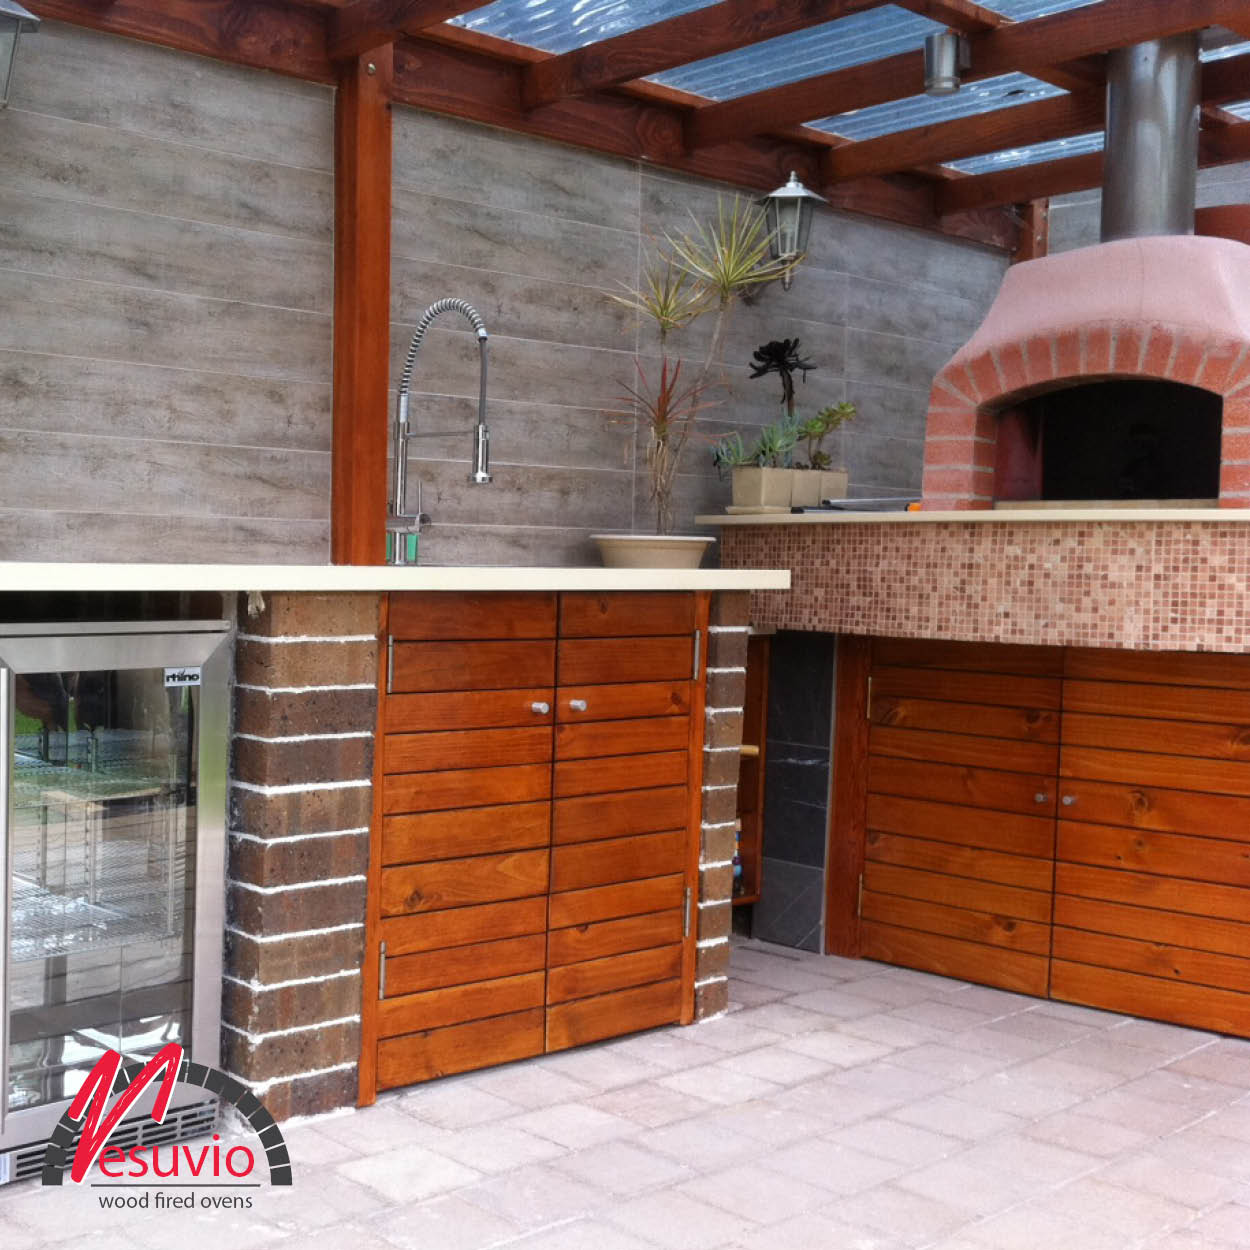 Residential Wood Fired Ovens Gallery